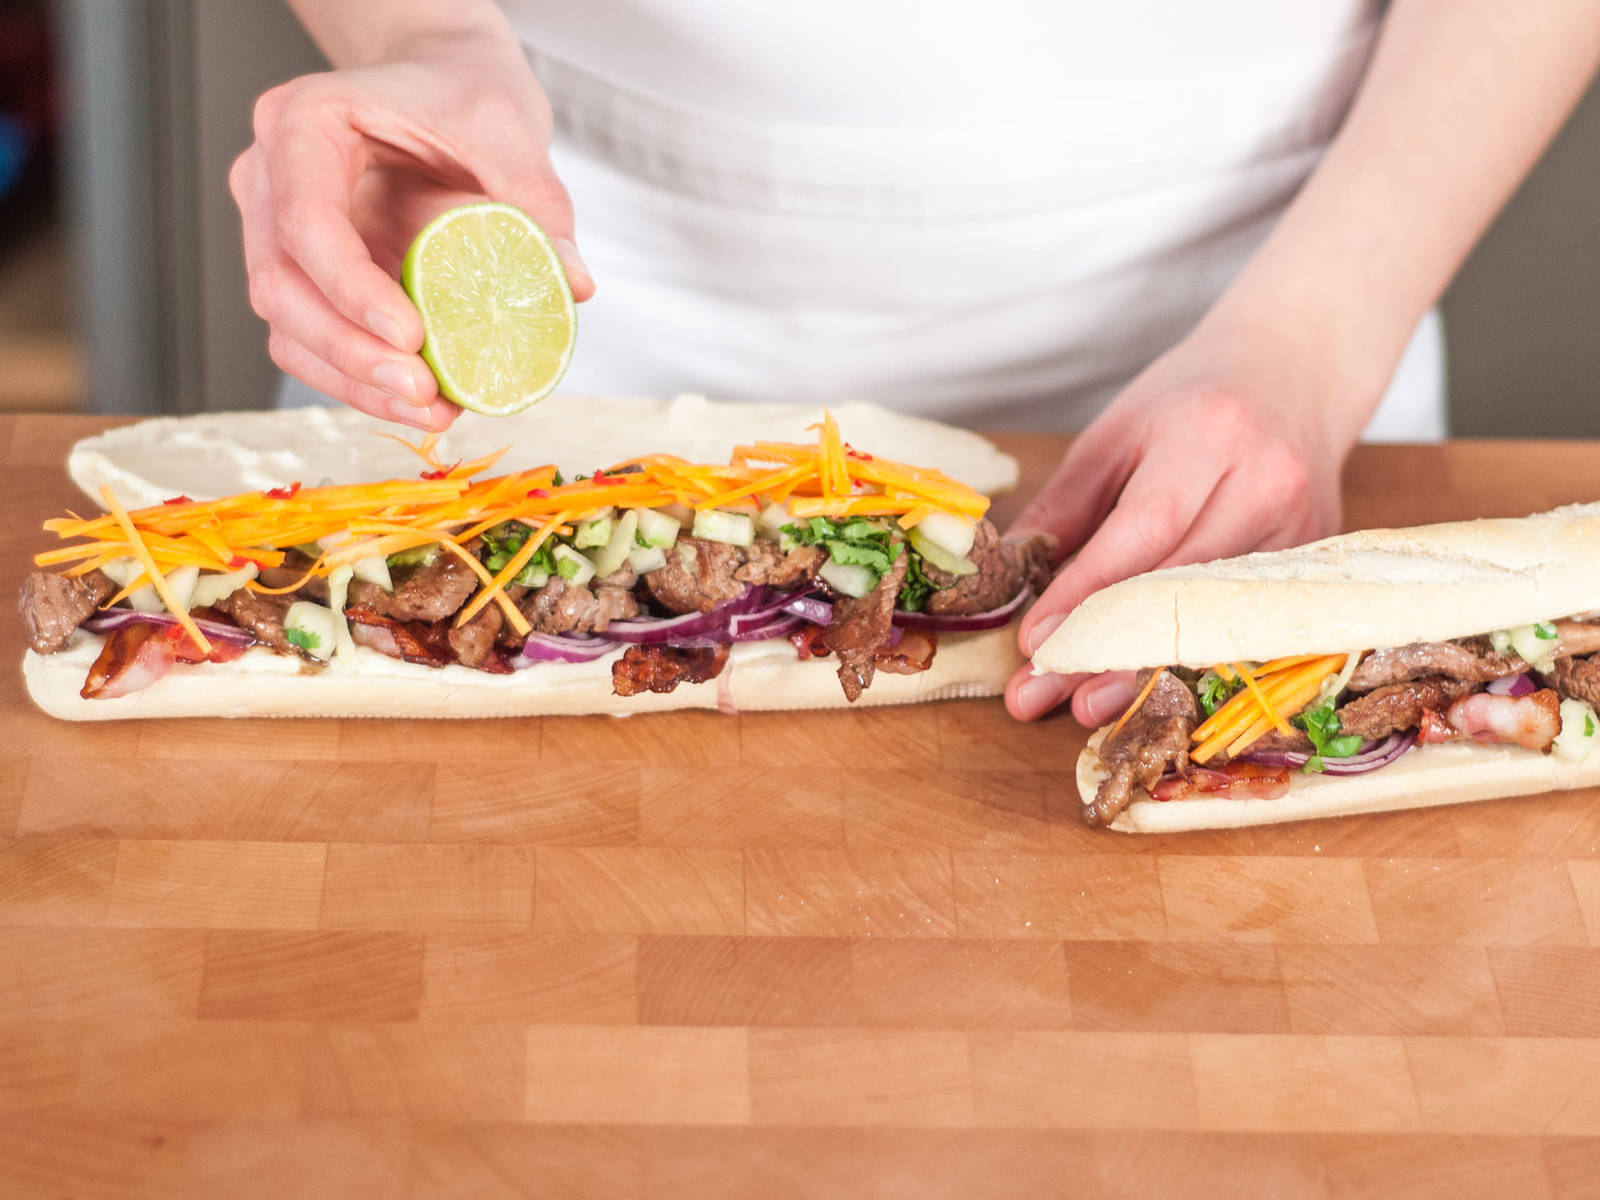 Cut baguette lengthwise, but not all the way through. Spread top and bottom layer of baguette with mayonnaise. Layer with bacon, beef, vegetables, and herbs. Garnish with remainder of chopped cilantro and top it off with a drizzle of lime juice. Enjoy!